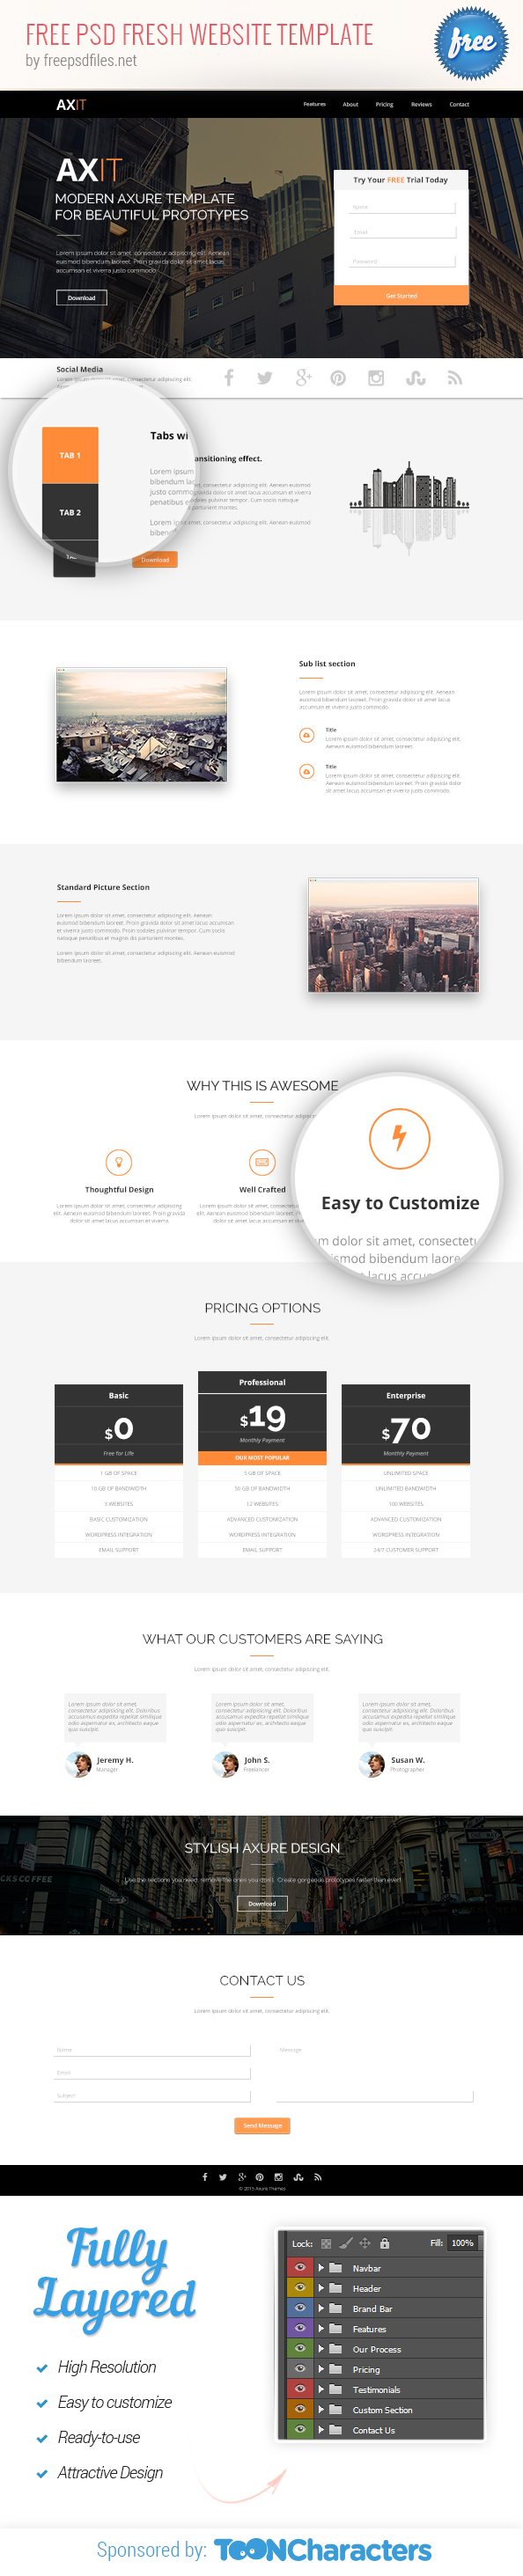 Free PSD Fresh Website Template